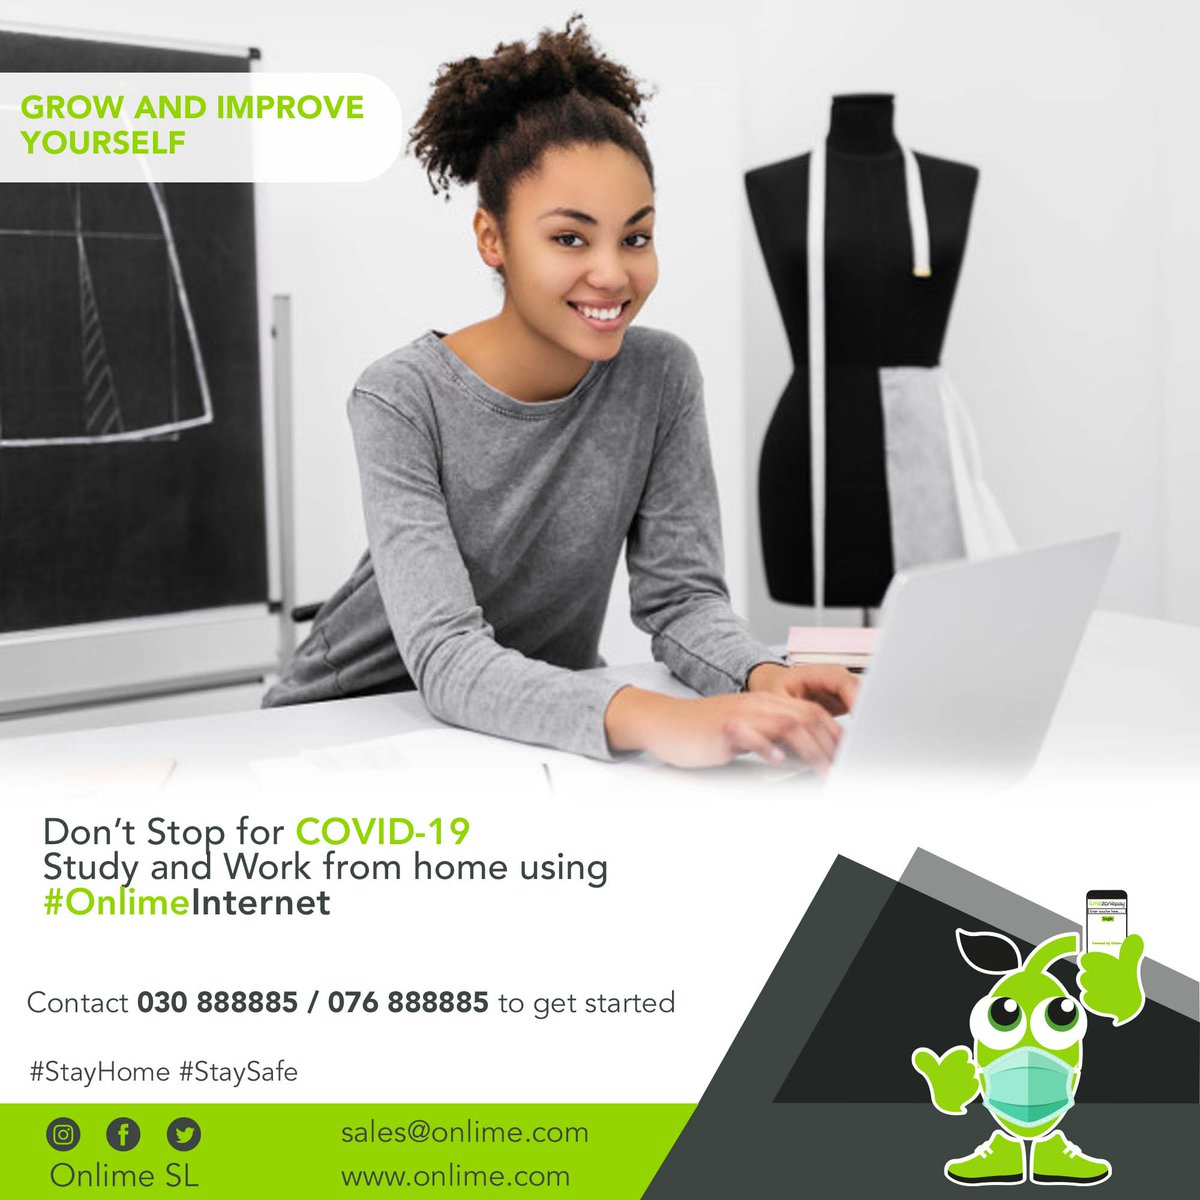 Make working and learning from home more fun with #OnlimeInternet Call 076888885 /030888885 to get started. #SierraLeone #Freetown #SaloneTwitter https://t.co/7TsmMVfYvC